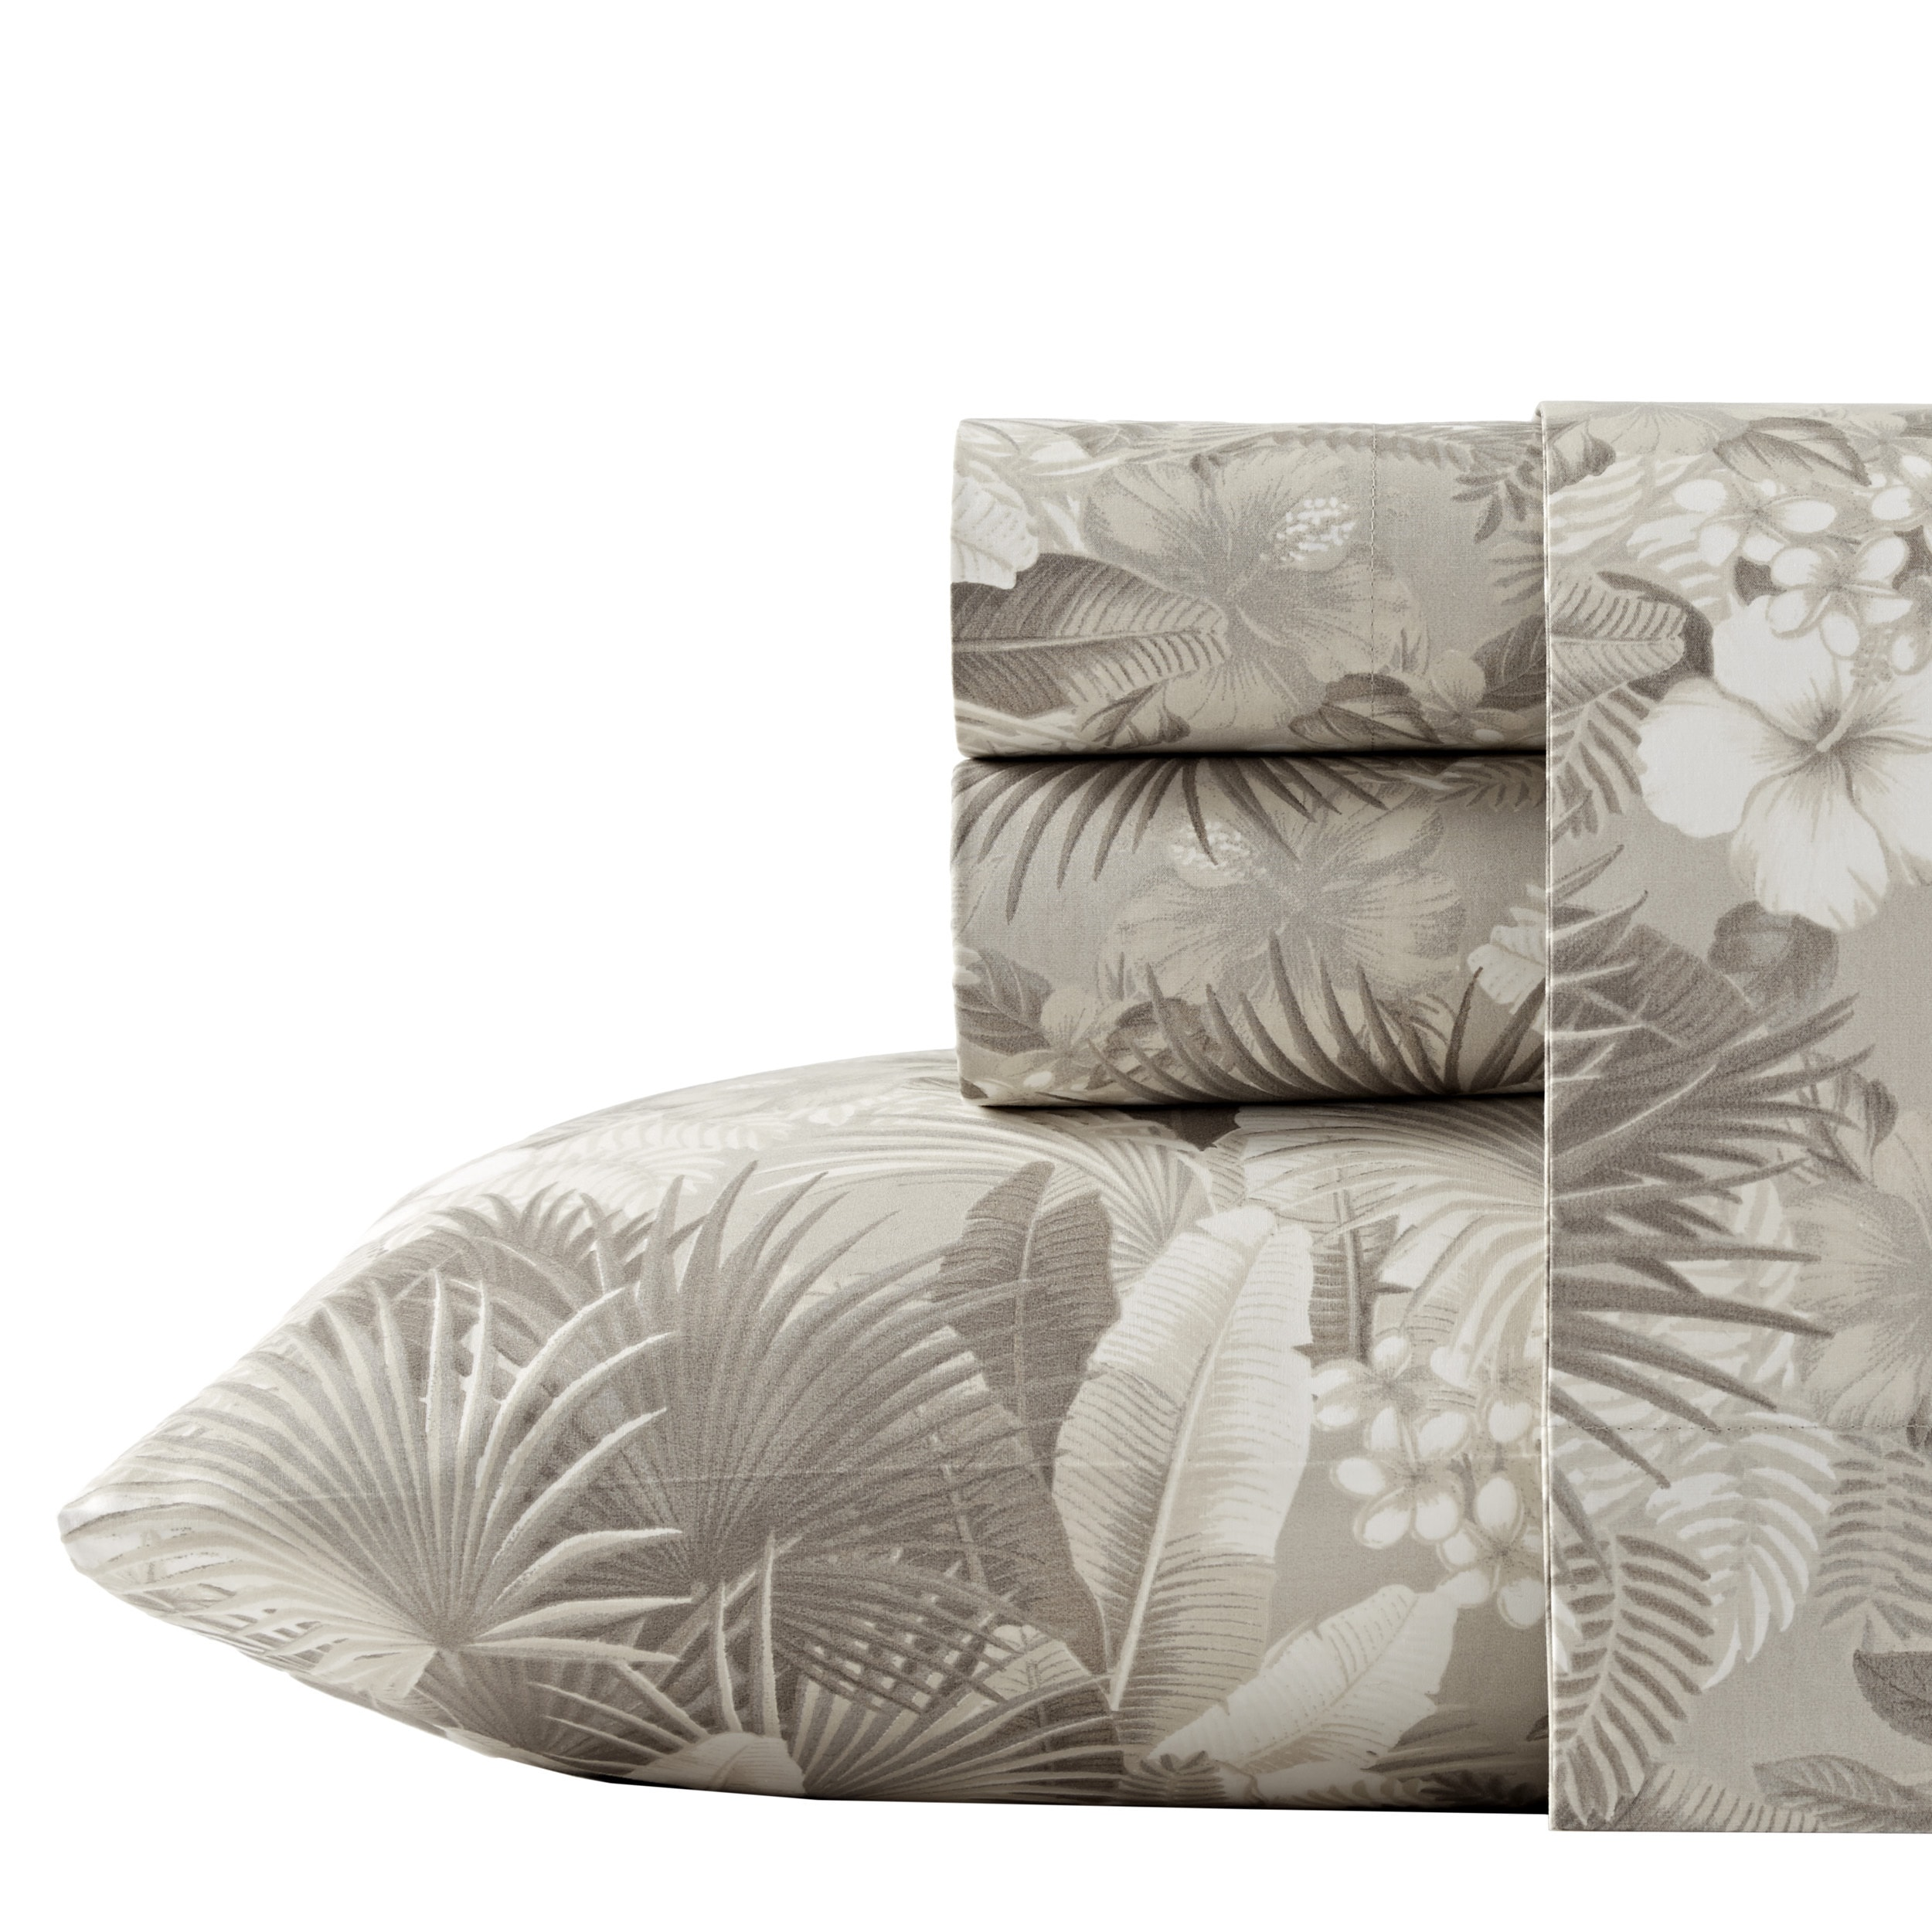 Tommy bahama hibiscus haven sheet set free shipping today tommy bahama hibiscus haven sheet set free shipping today overstock 19997859 izmirmasajfo Images